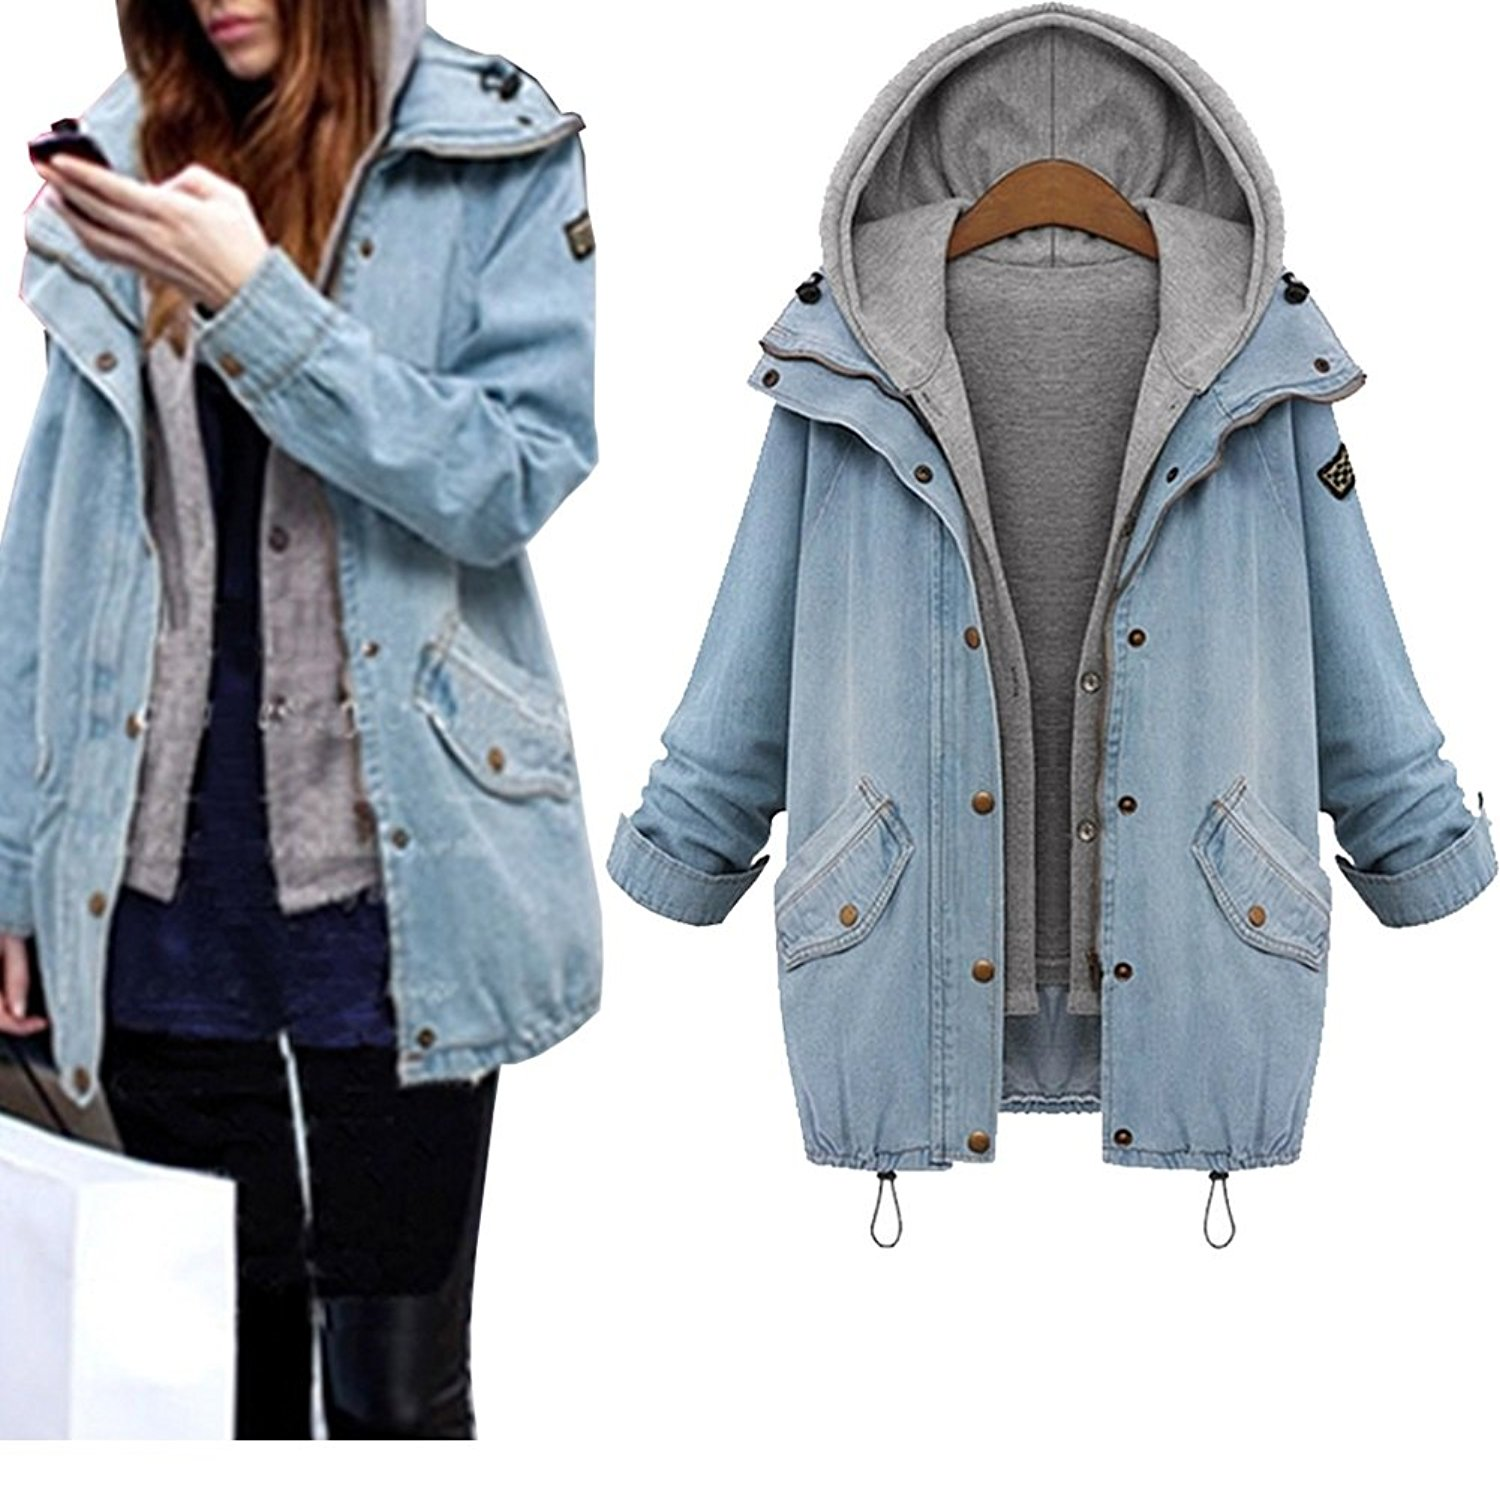 3ade61bd13097 Get Quotations · JudyBridal Womens Oversized Denim Jacket Zipper Fashion  Hooded Blue Jean Jacket